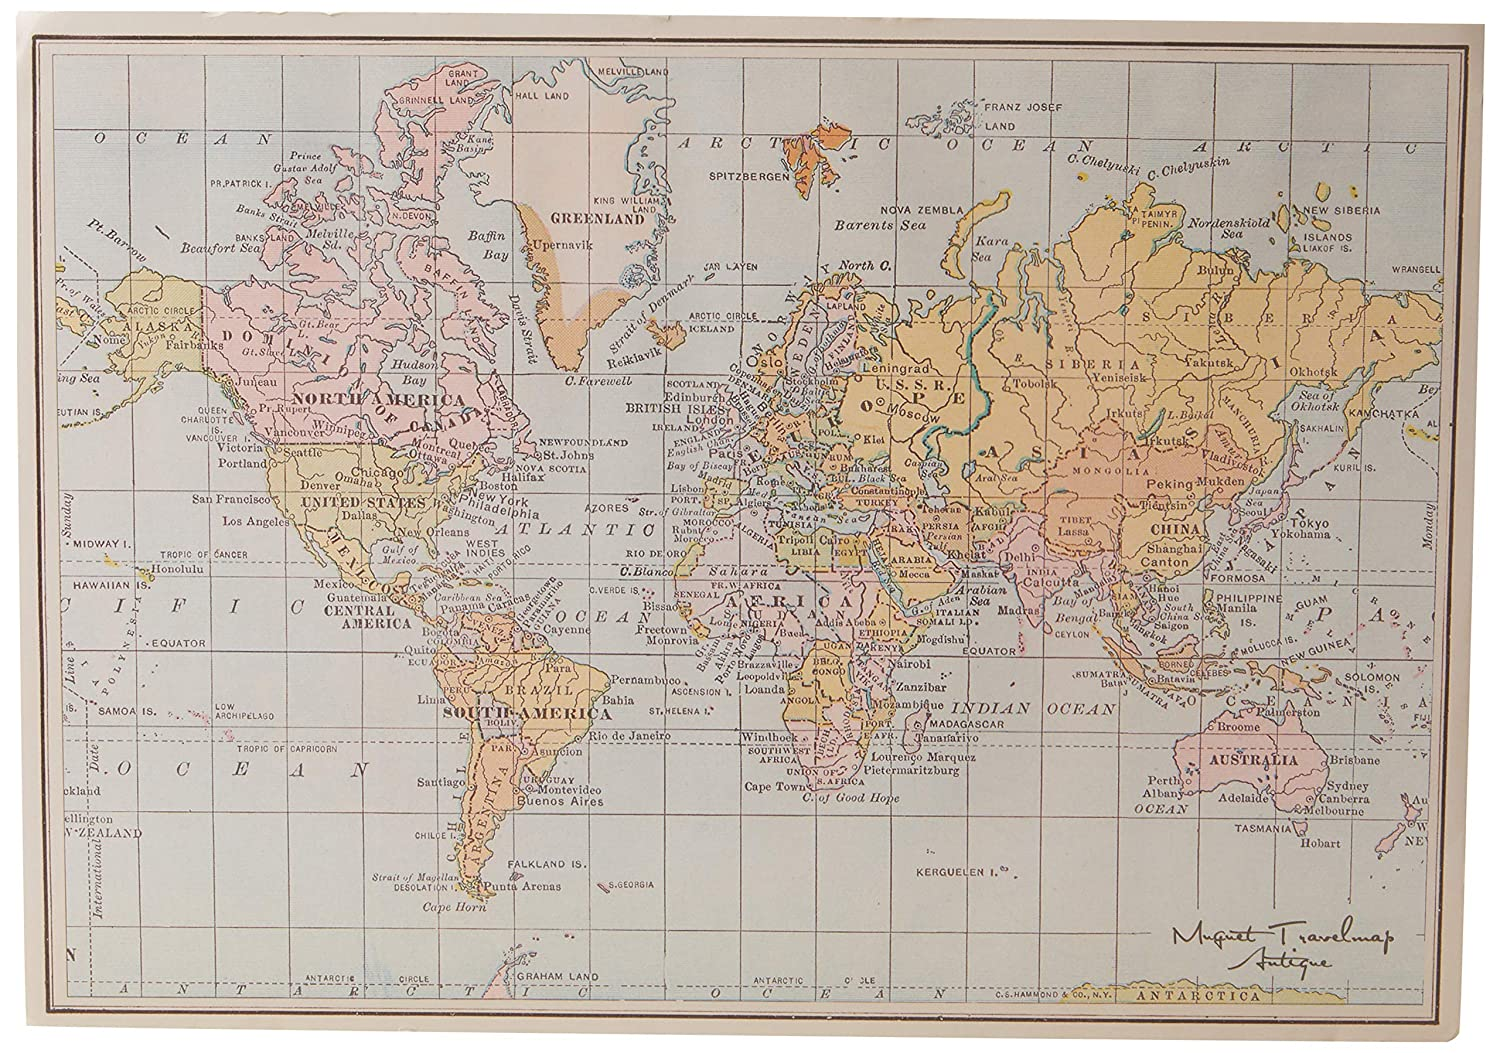 Midway On World Map.Amazon Com Muguetshop 10002 World Map 30 X 40 Cm Pastel